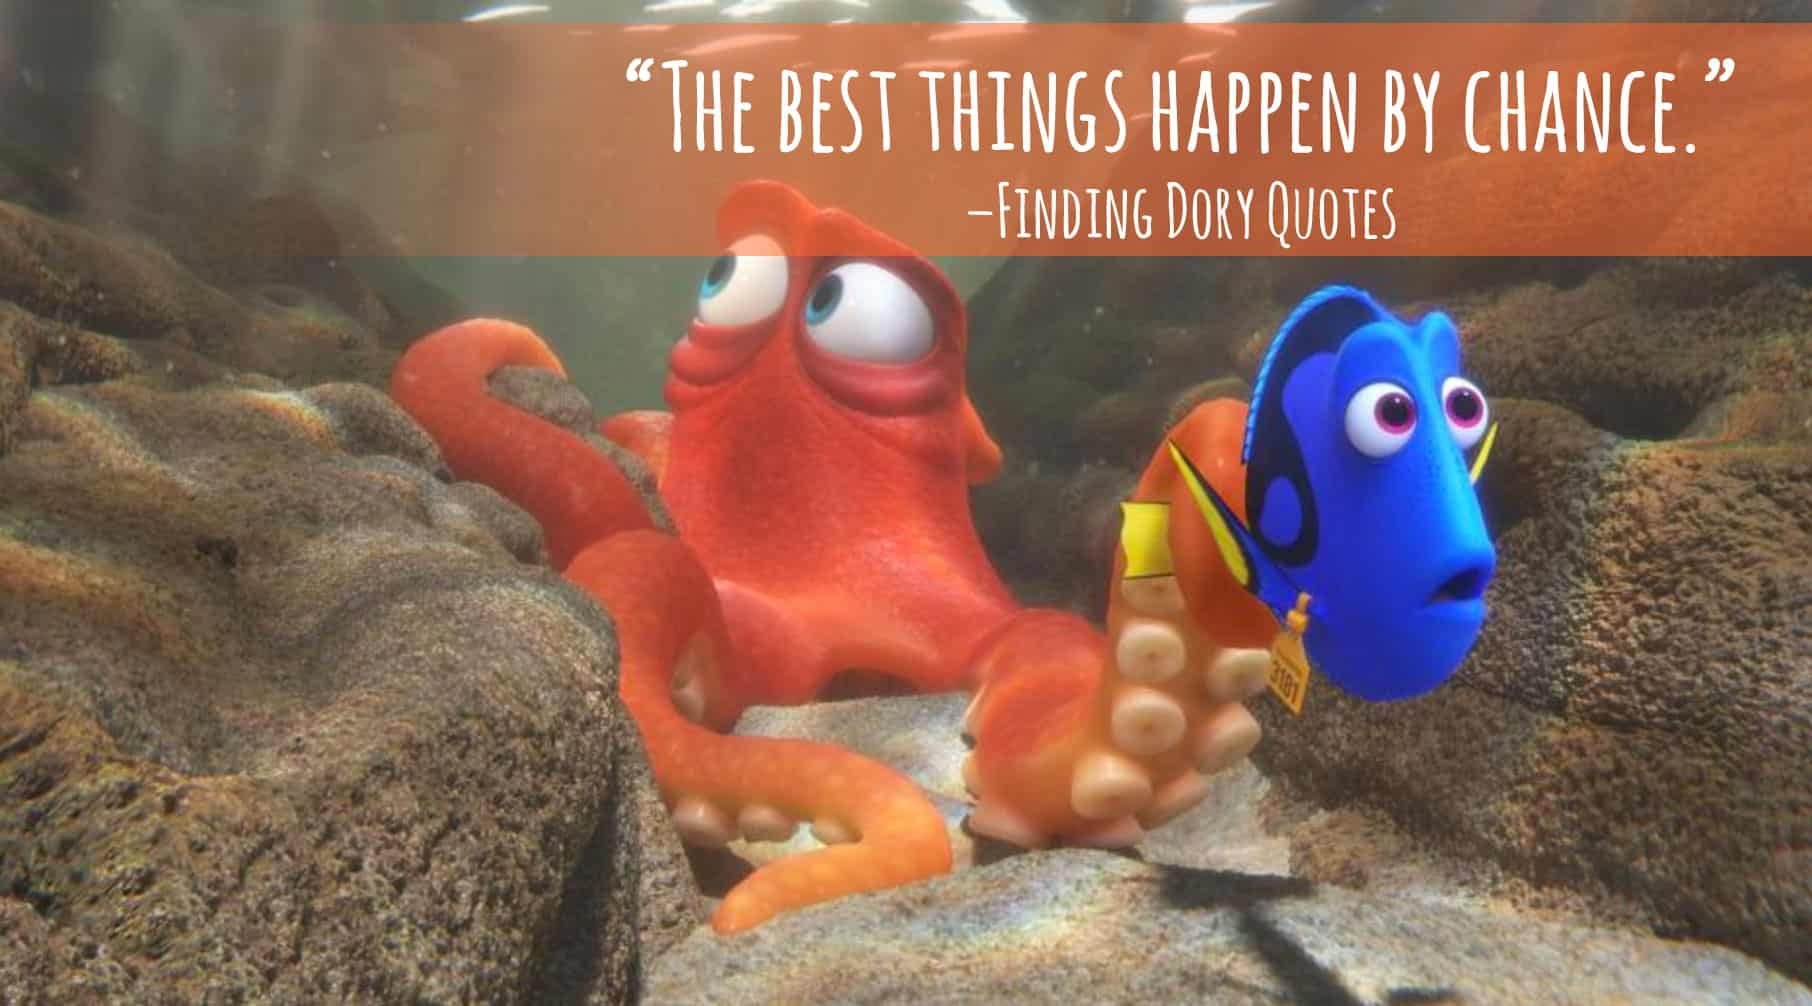 Dory Quotes Finding Dory Quotes  Entire List Of The Best Movie Lines In The